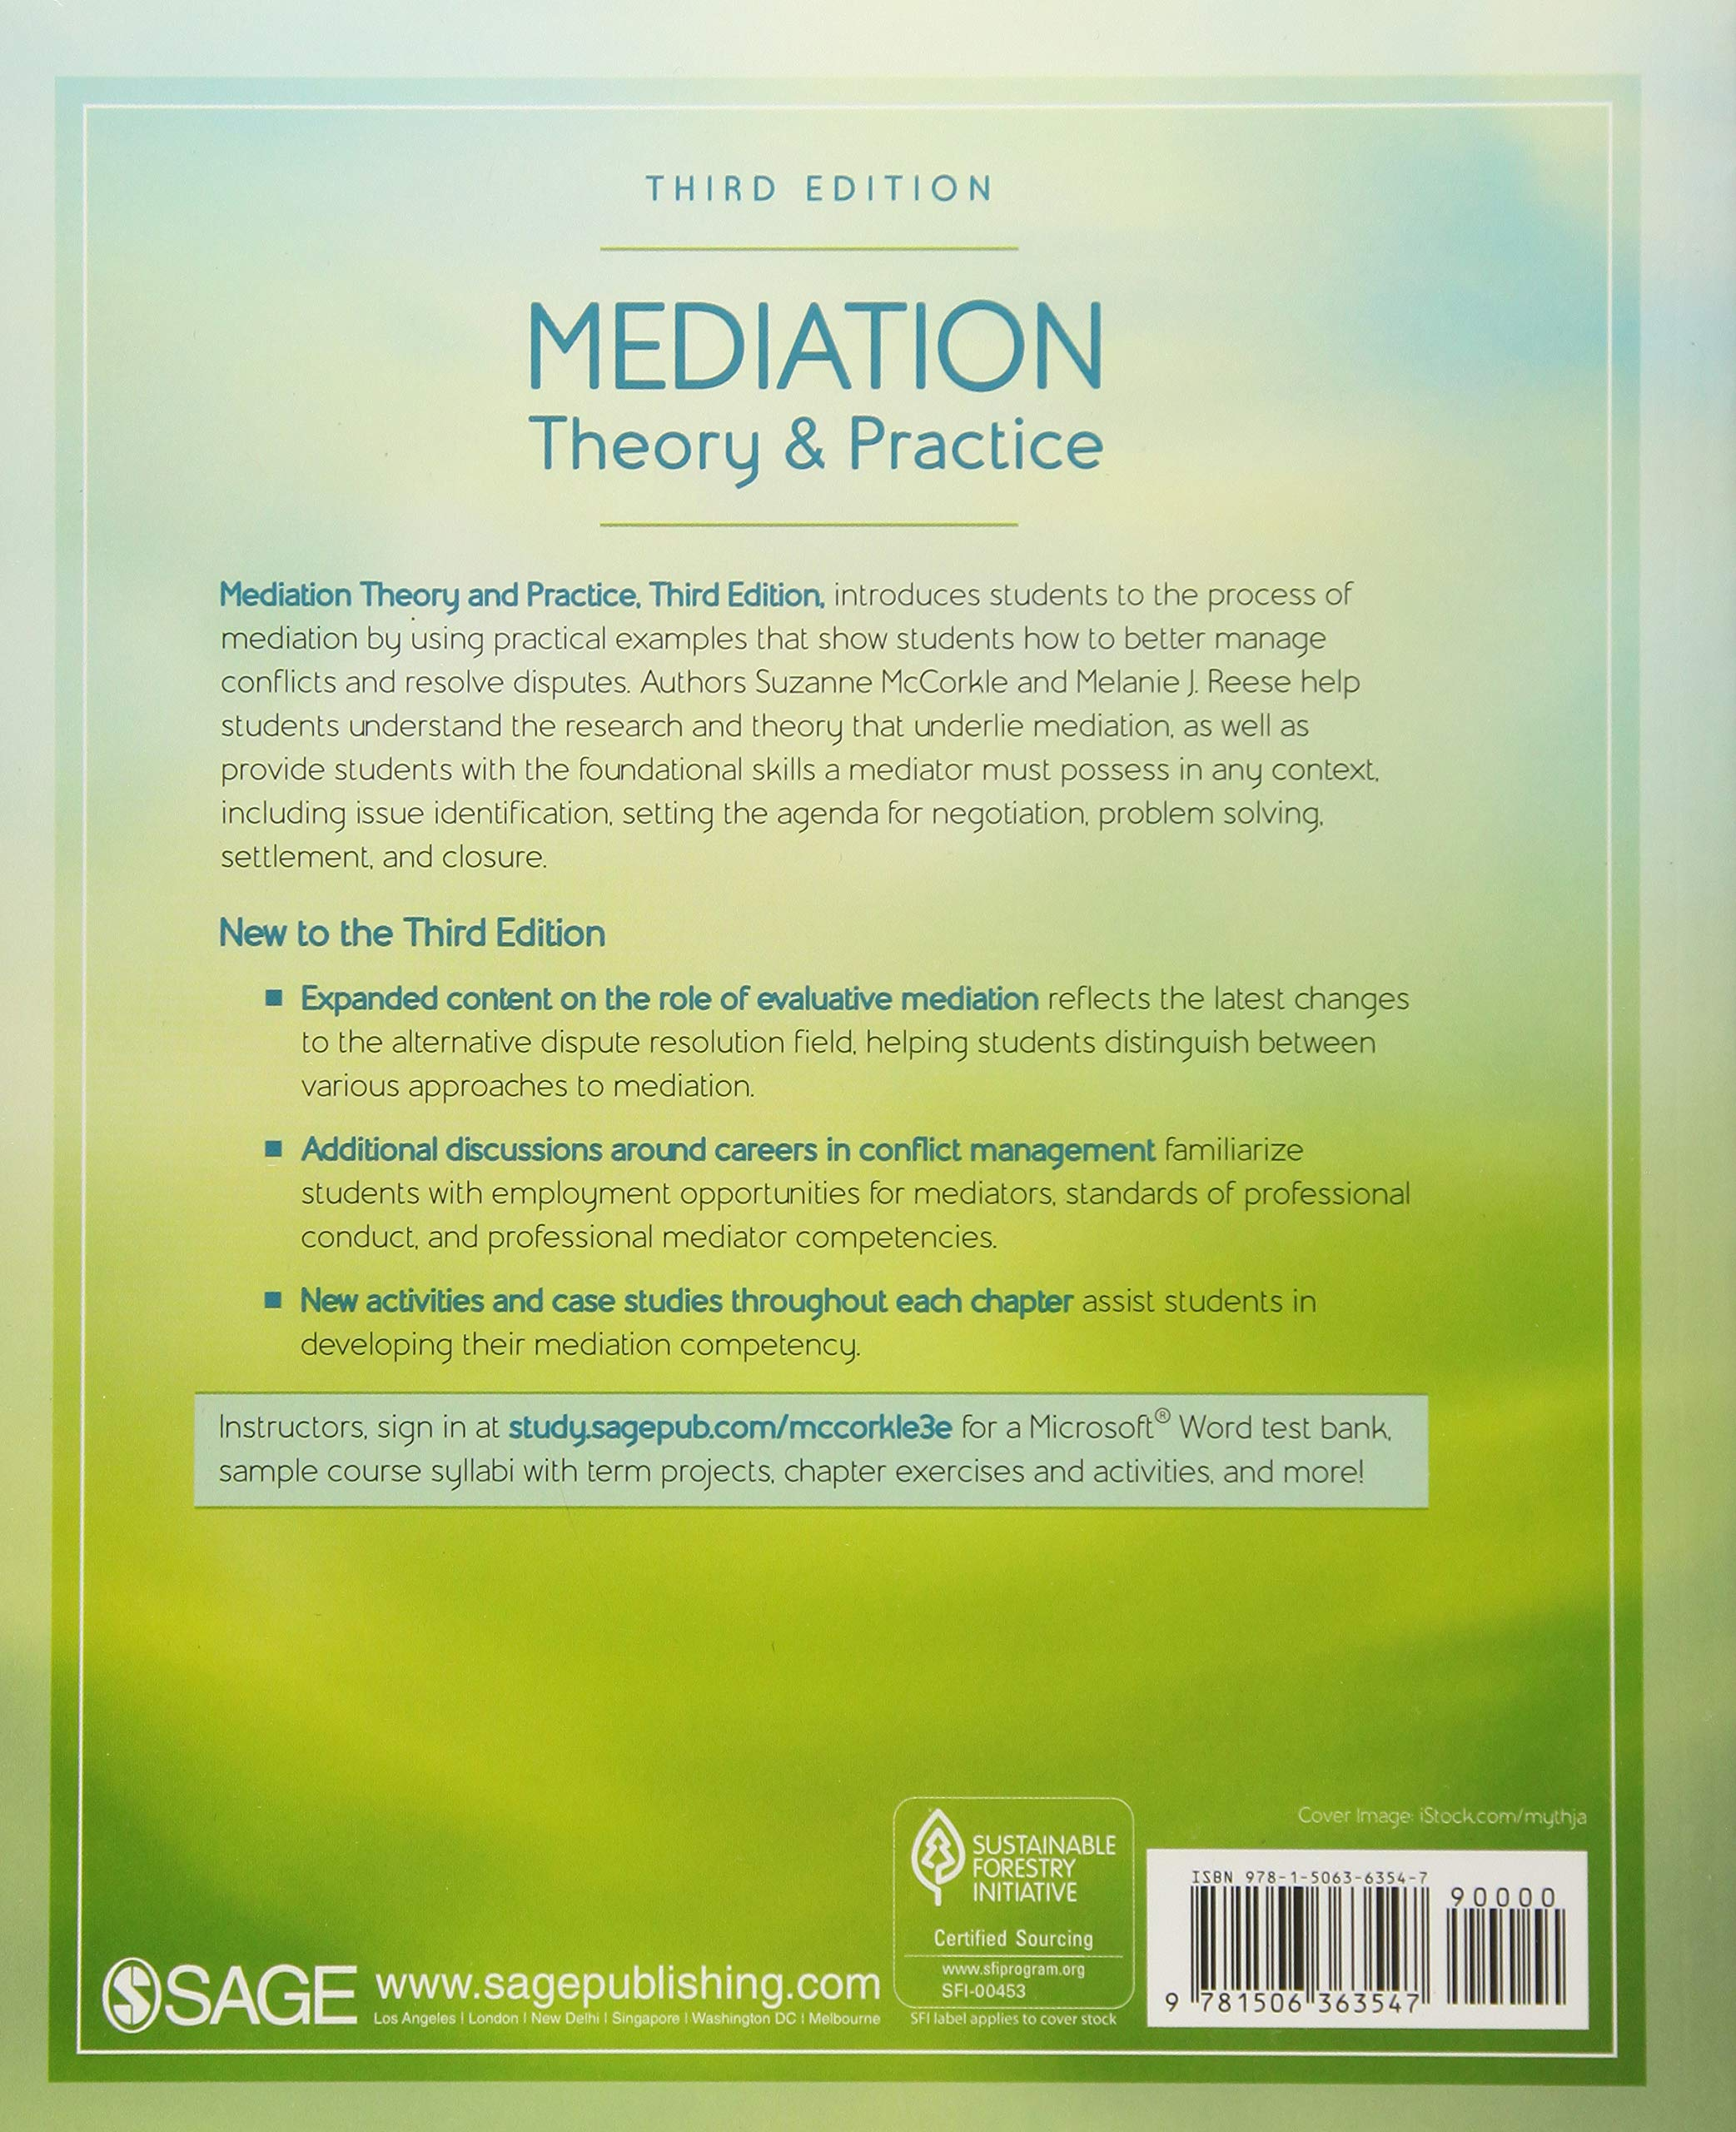 Mediation Theory and Practice: Suzanne McCorkle